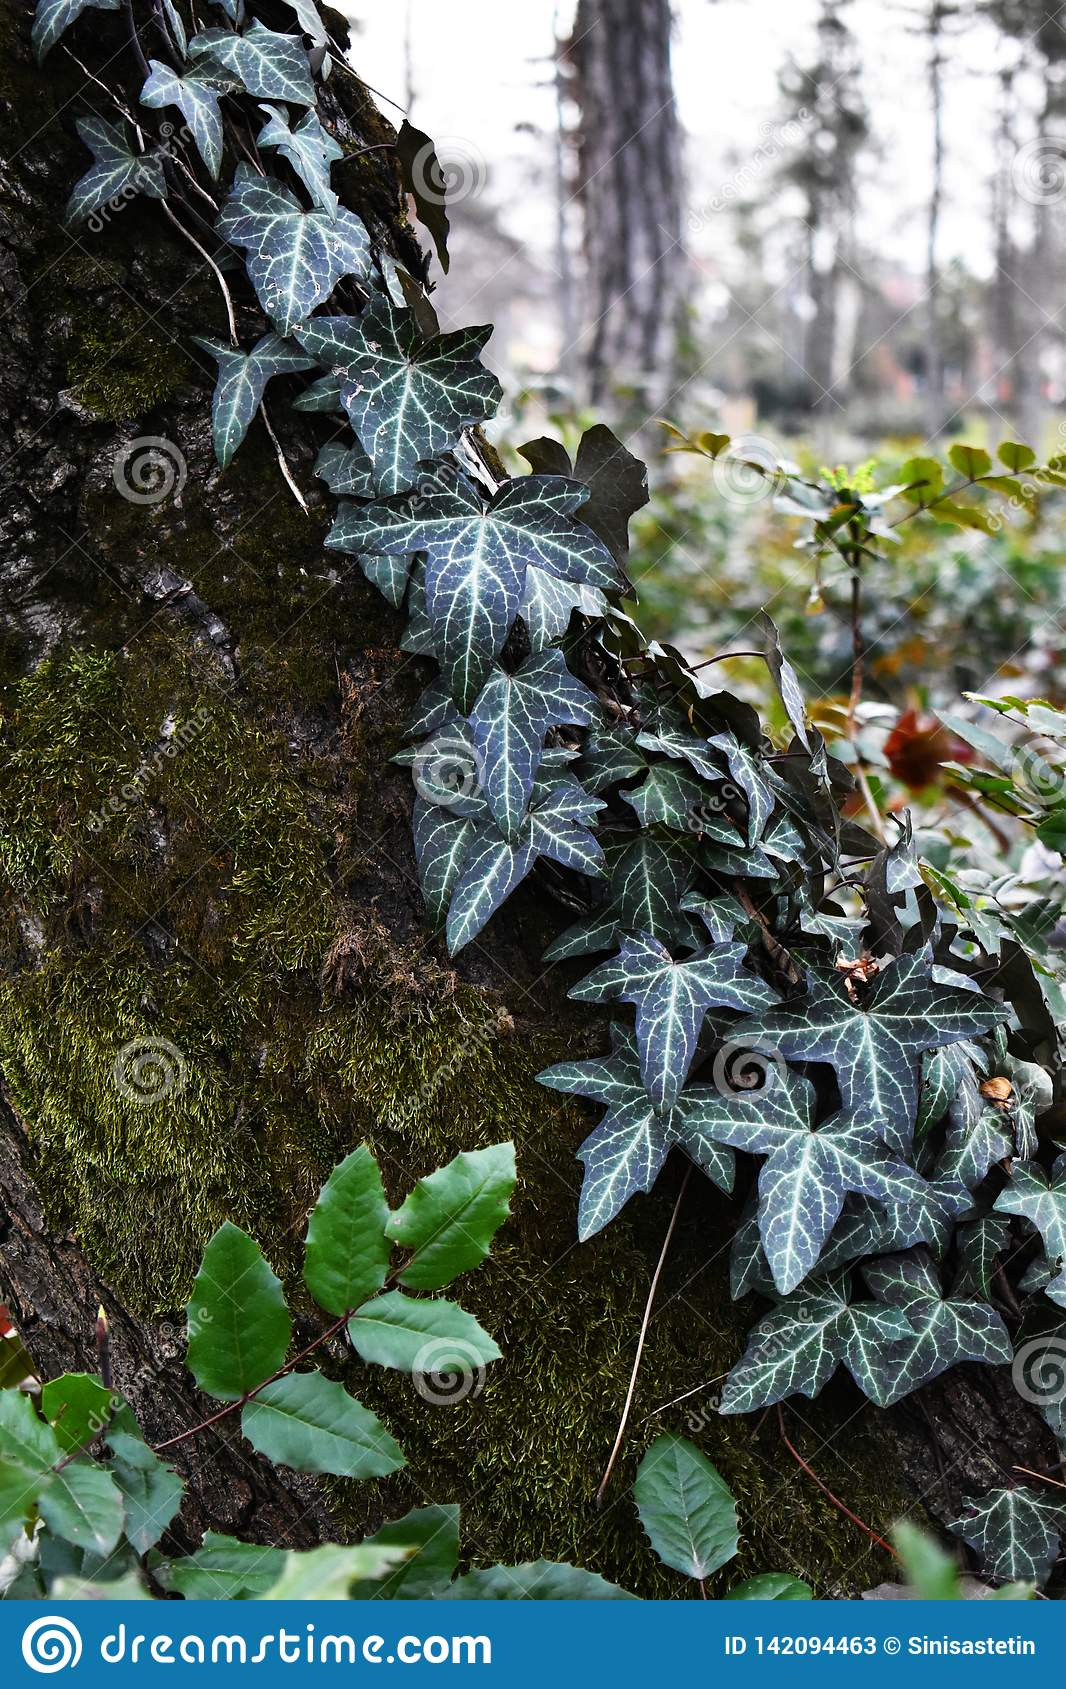 Ivy and moss over bark